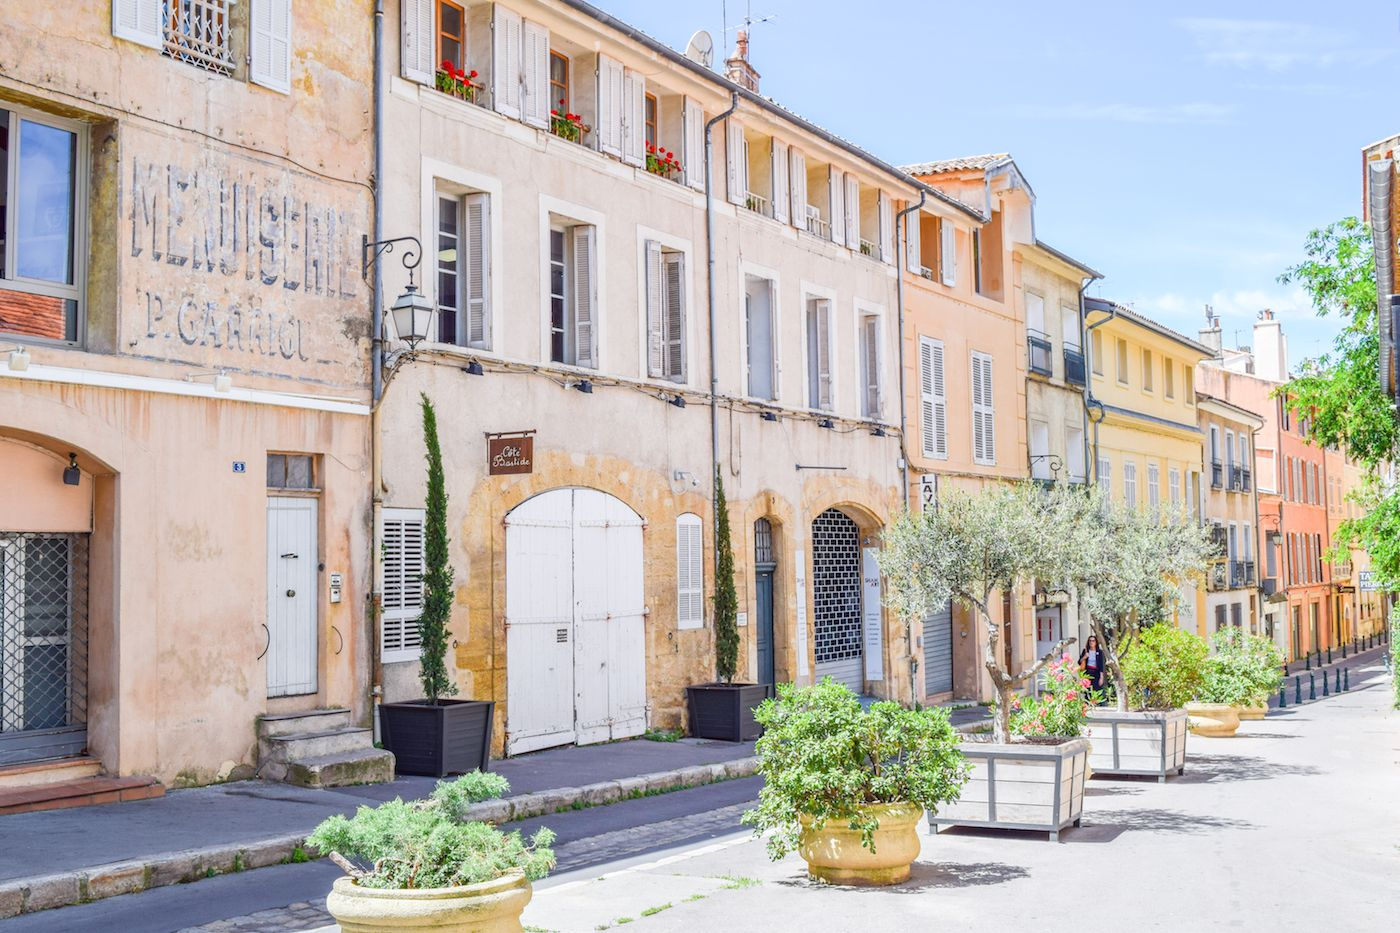 Places you MUST visit when in France – Rue Fernand Dol, Aix-en-Provence